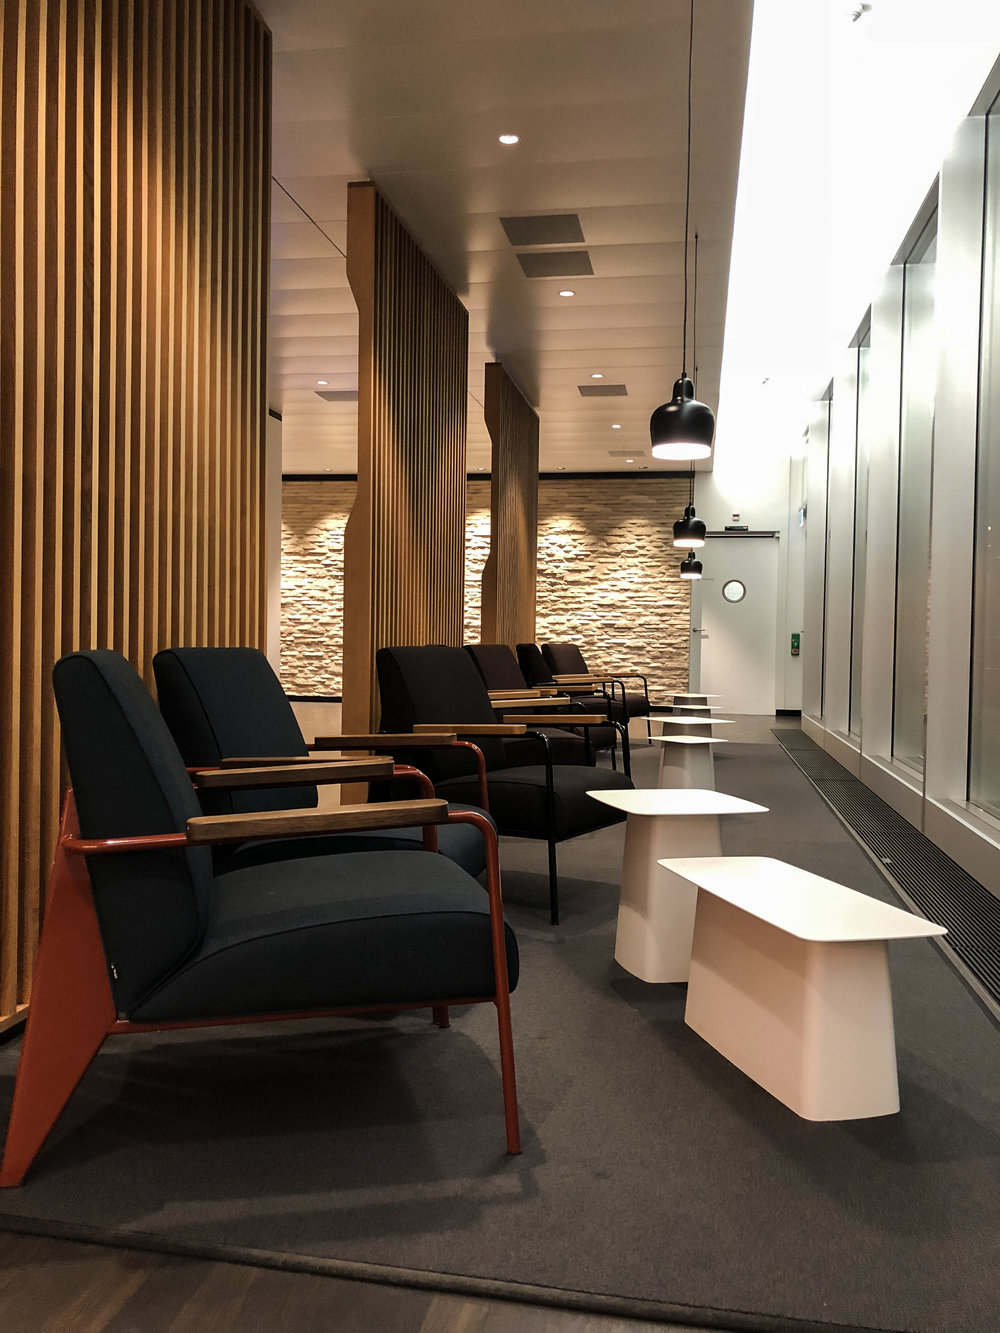 Swiss Business Class Lounge Seating in Zurich